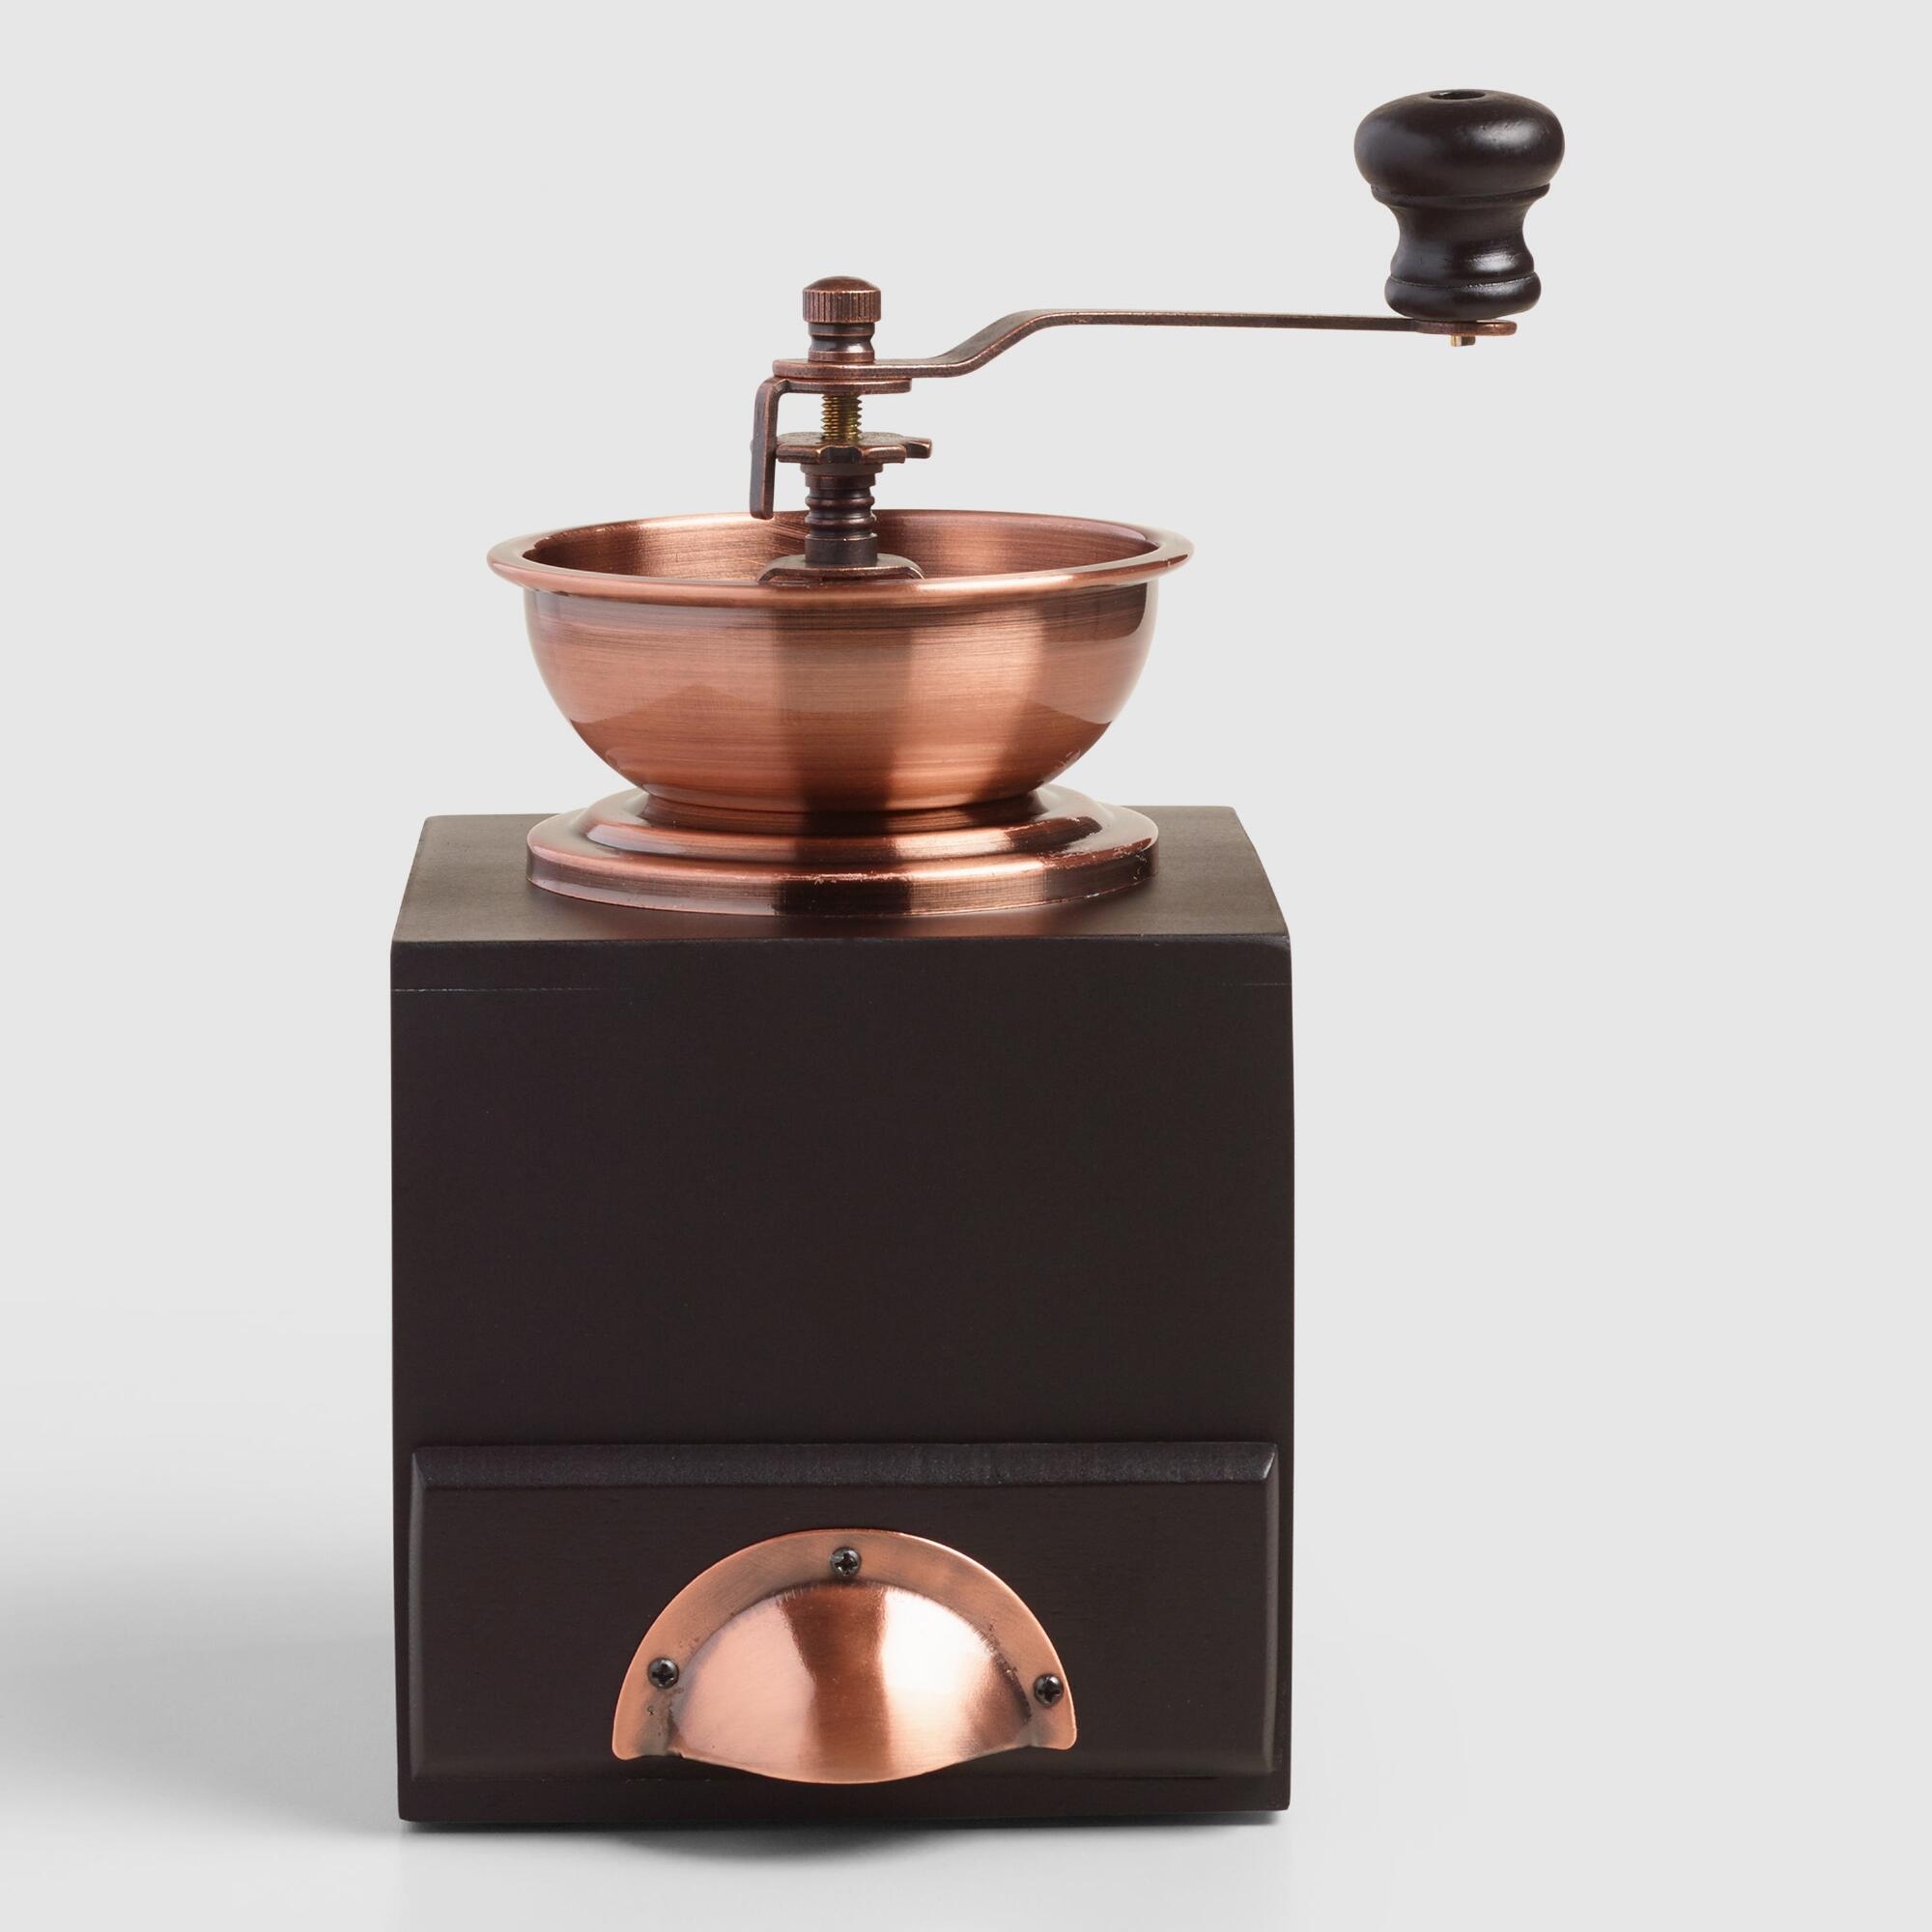 Copper Vintage Style Burr Coffee Grinder World Market